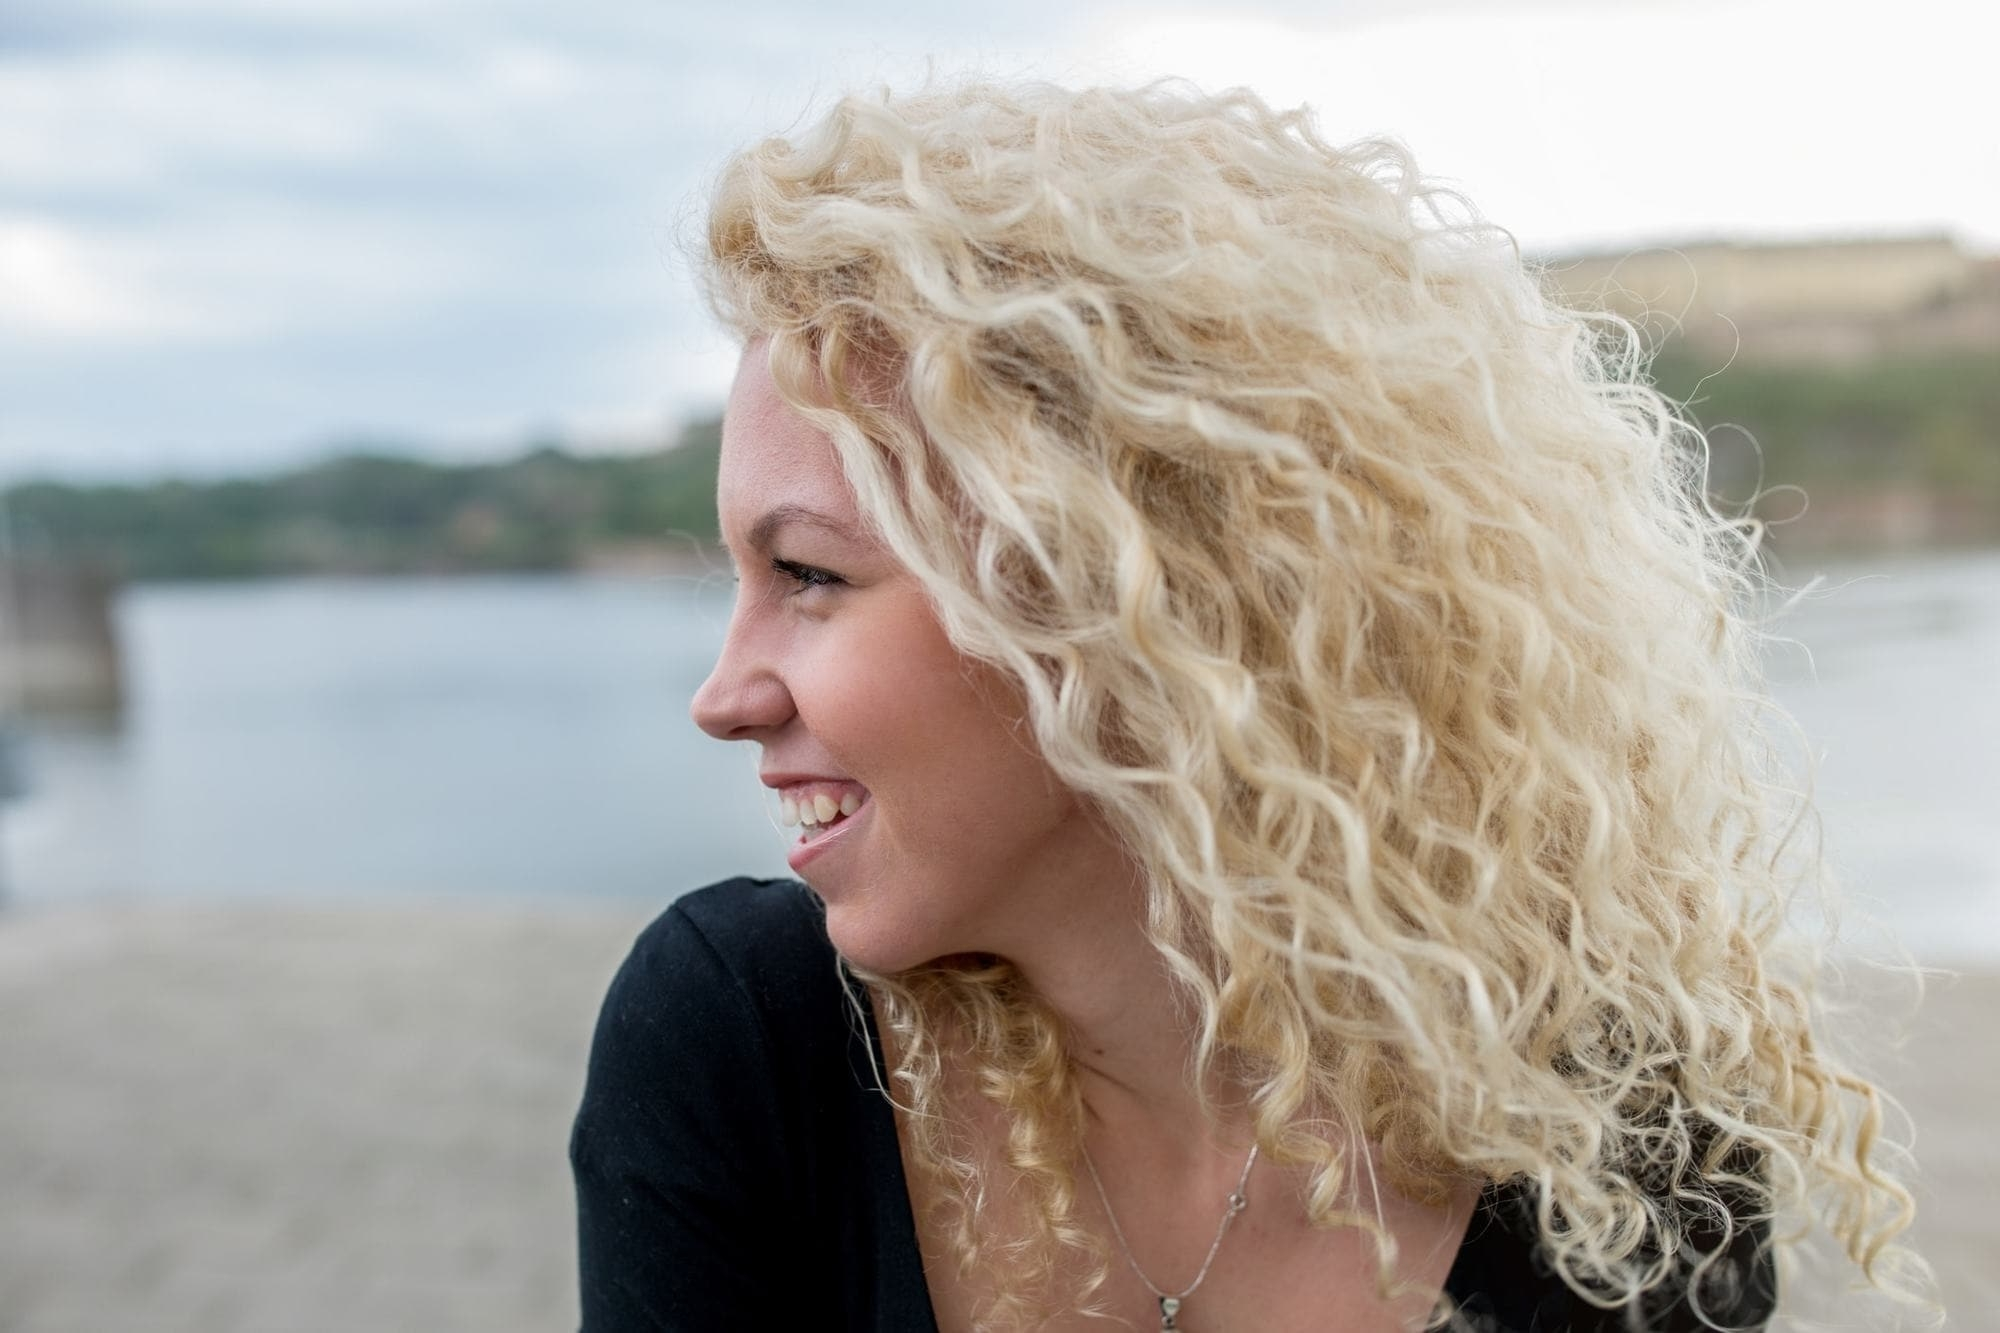 Fashionable White Blonde Curls Hairstyles Within Blonde Curly Hair: 16 Bold And Beautiful Ways To Wear The Look (View 10 of 20)